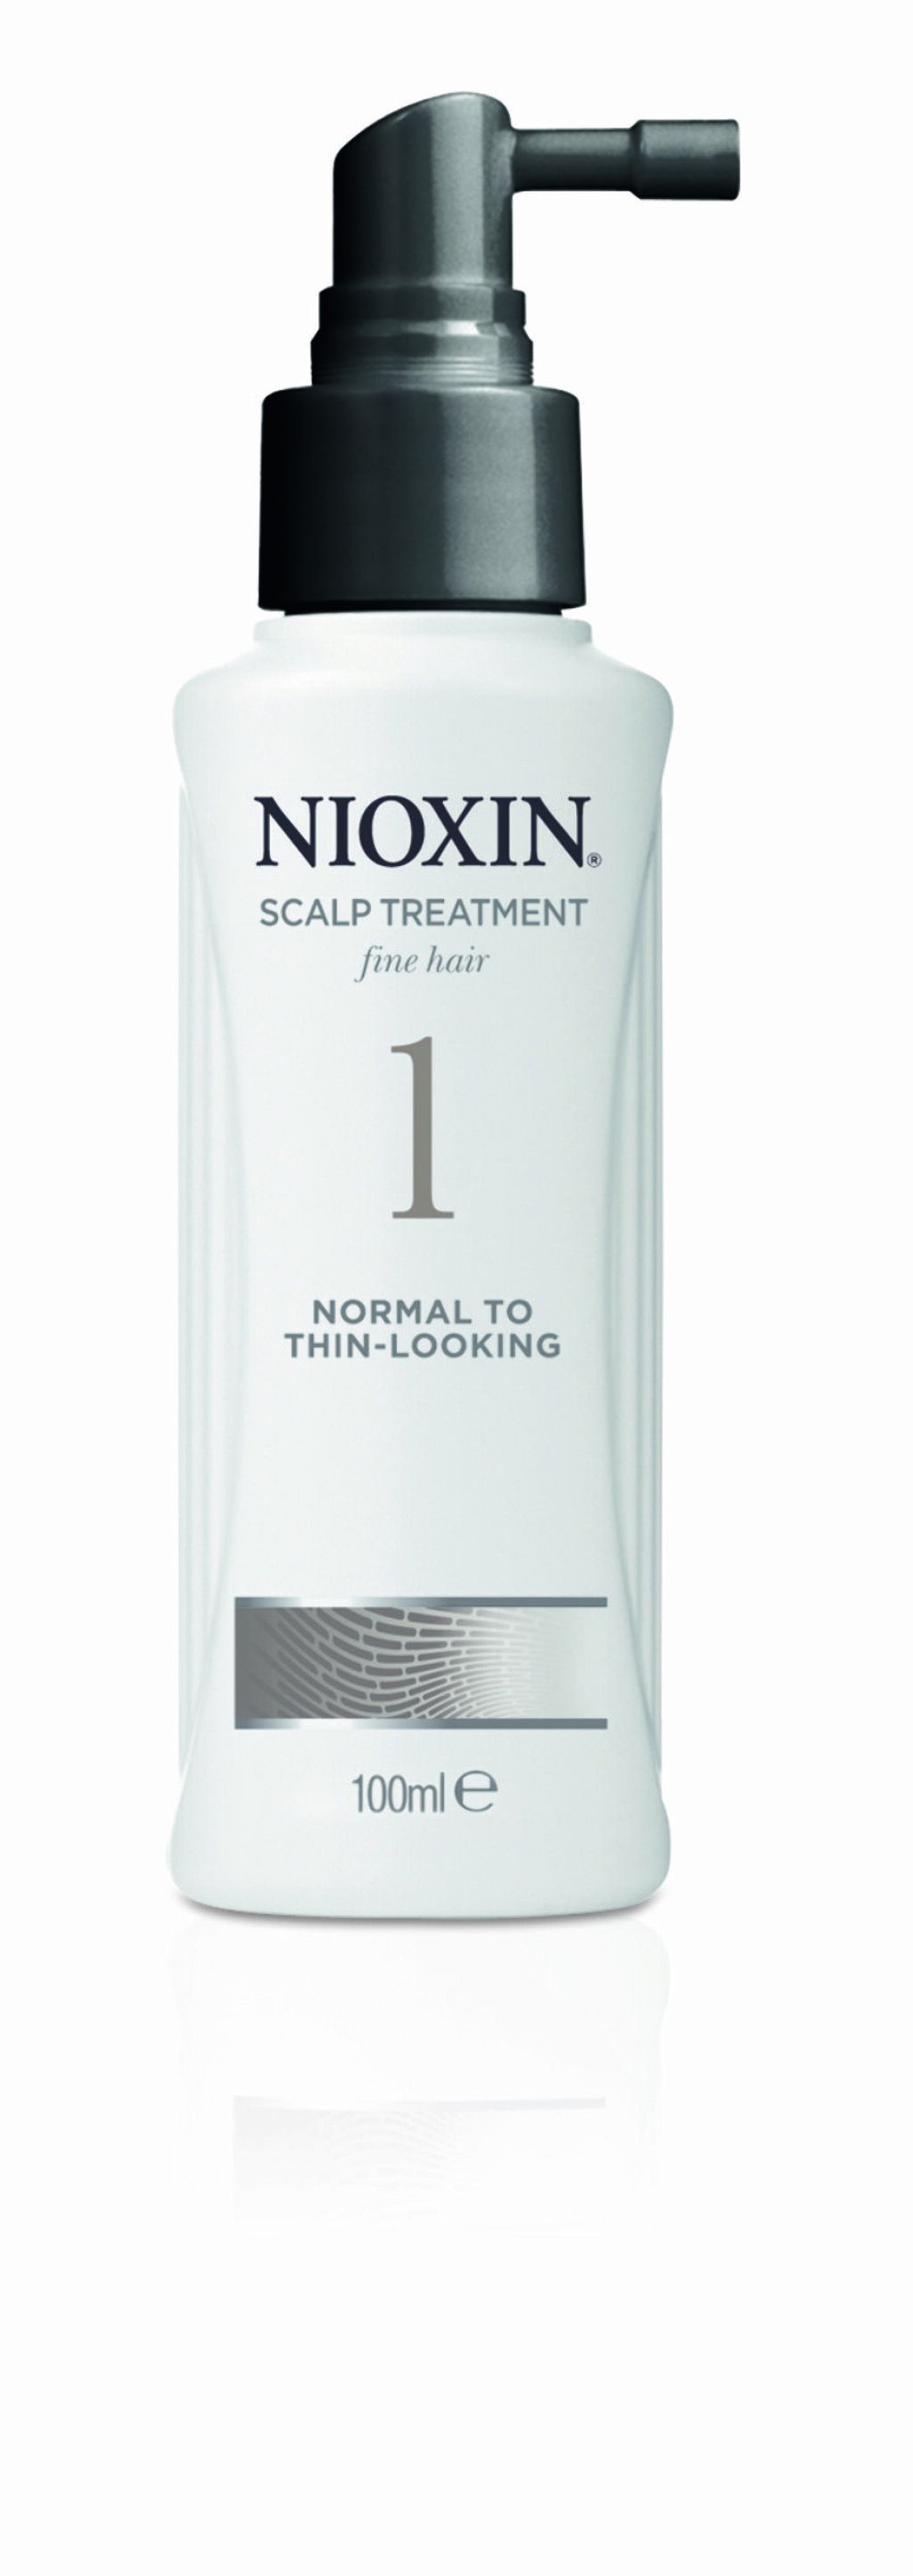 Nioxin, Scalp Treatment, 1 Normal to Thin-Looking (kr 310).